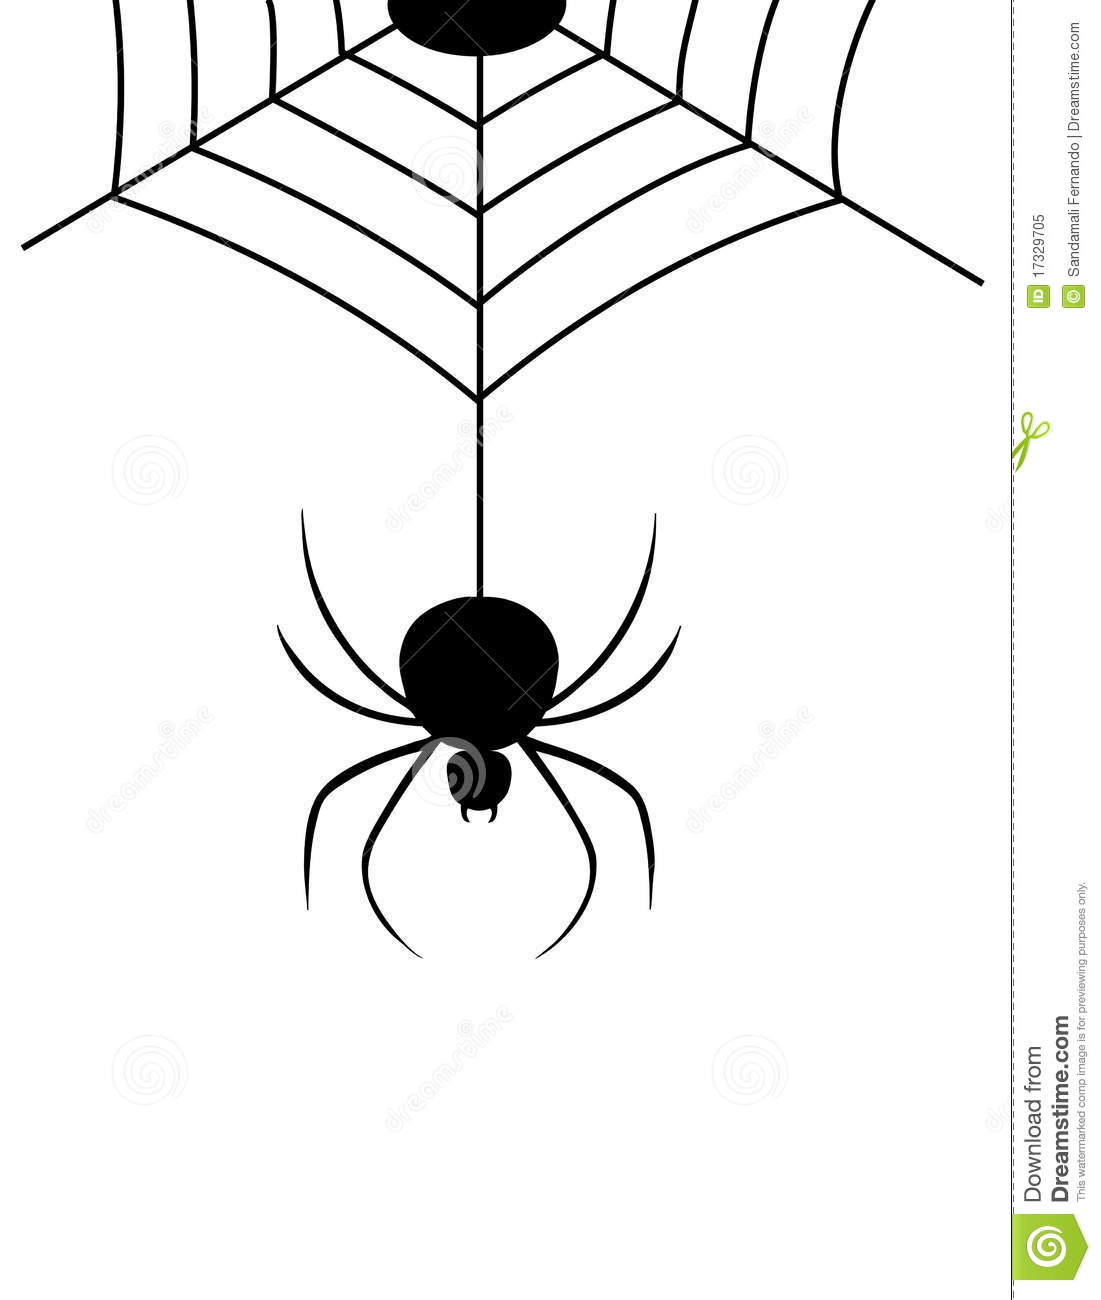 Spider clipart dangling. Free spiders download best